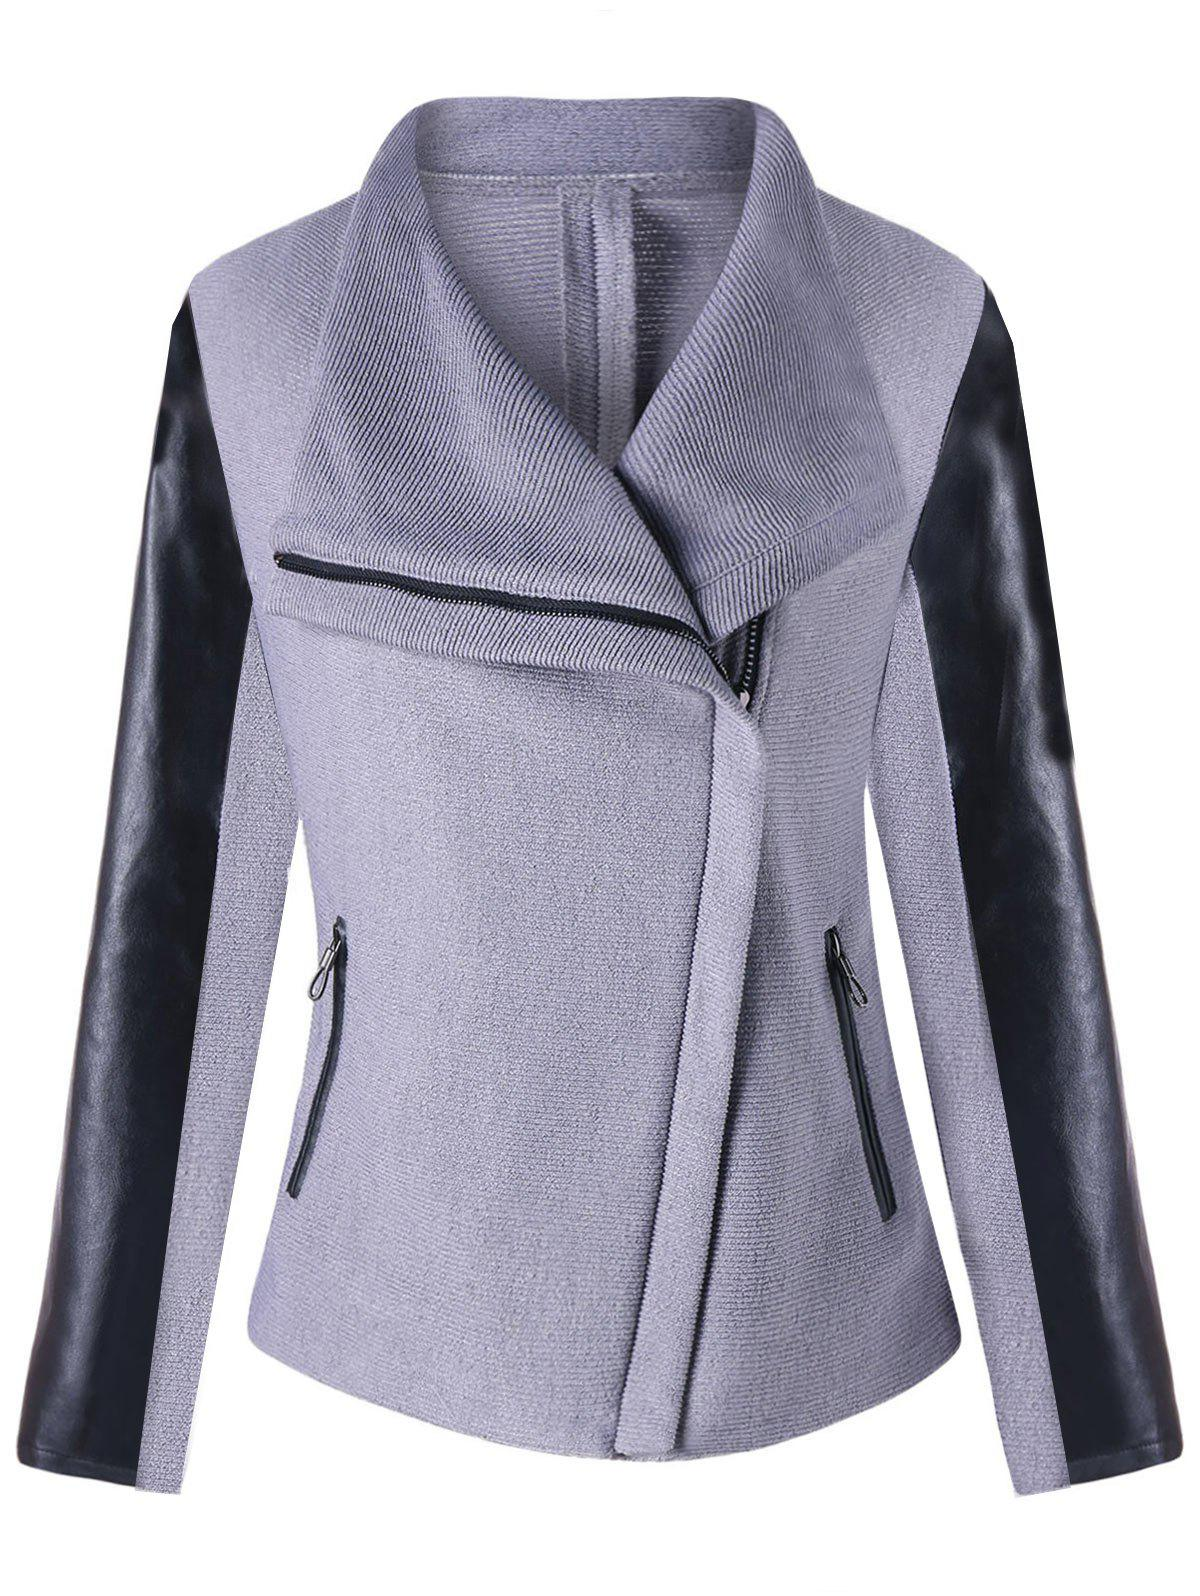 Trendy PU Leather Panel Turndown Collar Zipped Jacket